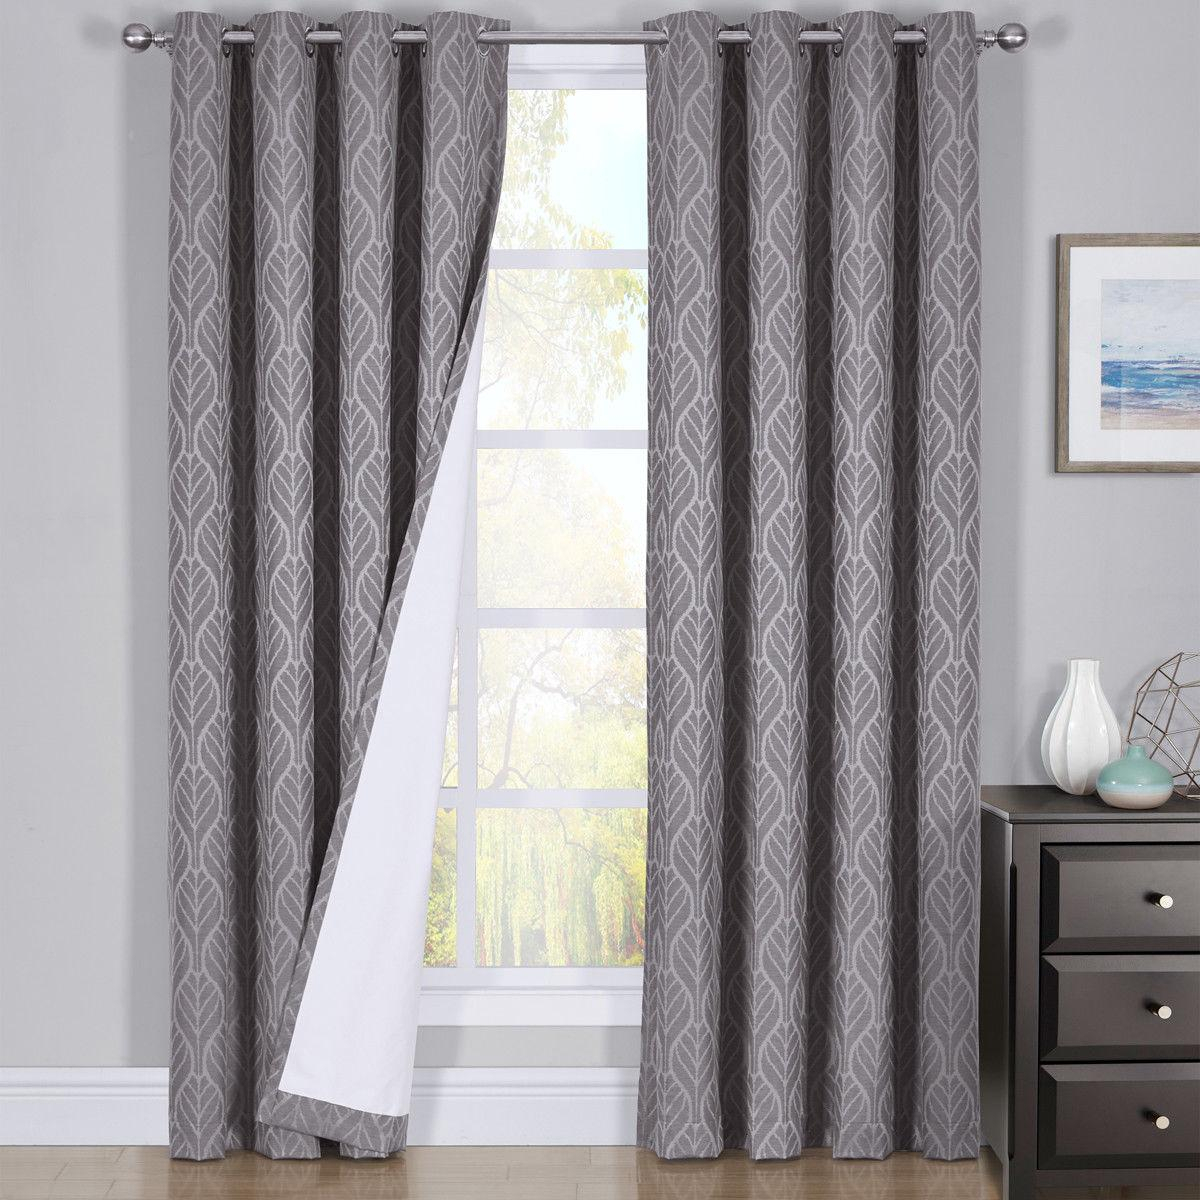 Hilton Blackout Curtains Panels Jacquard Thermal Insulated Pairs Inside Insulated Thermal Blackout Curtain Panel Pairs (View 11 of 20)